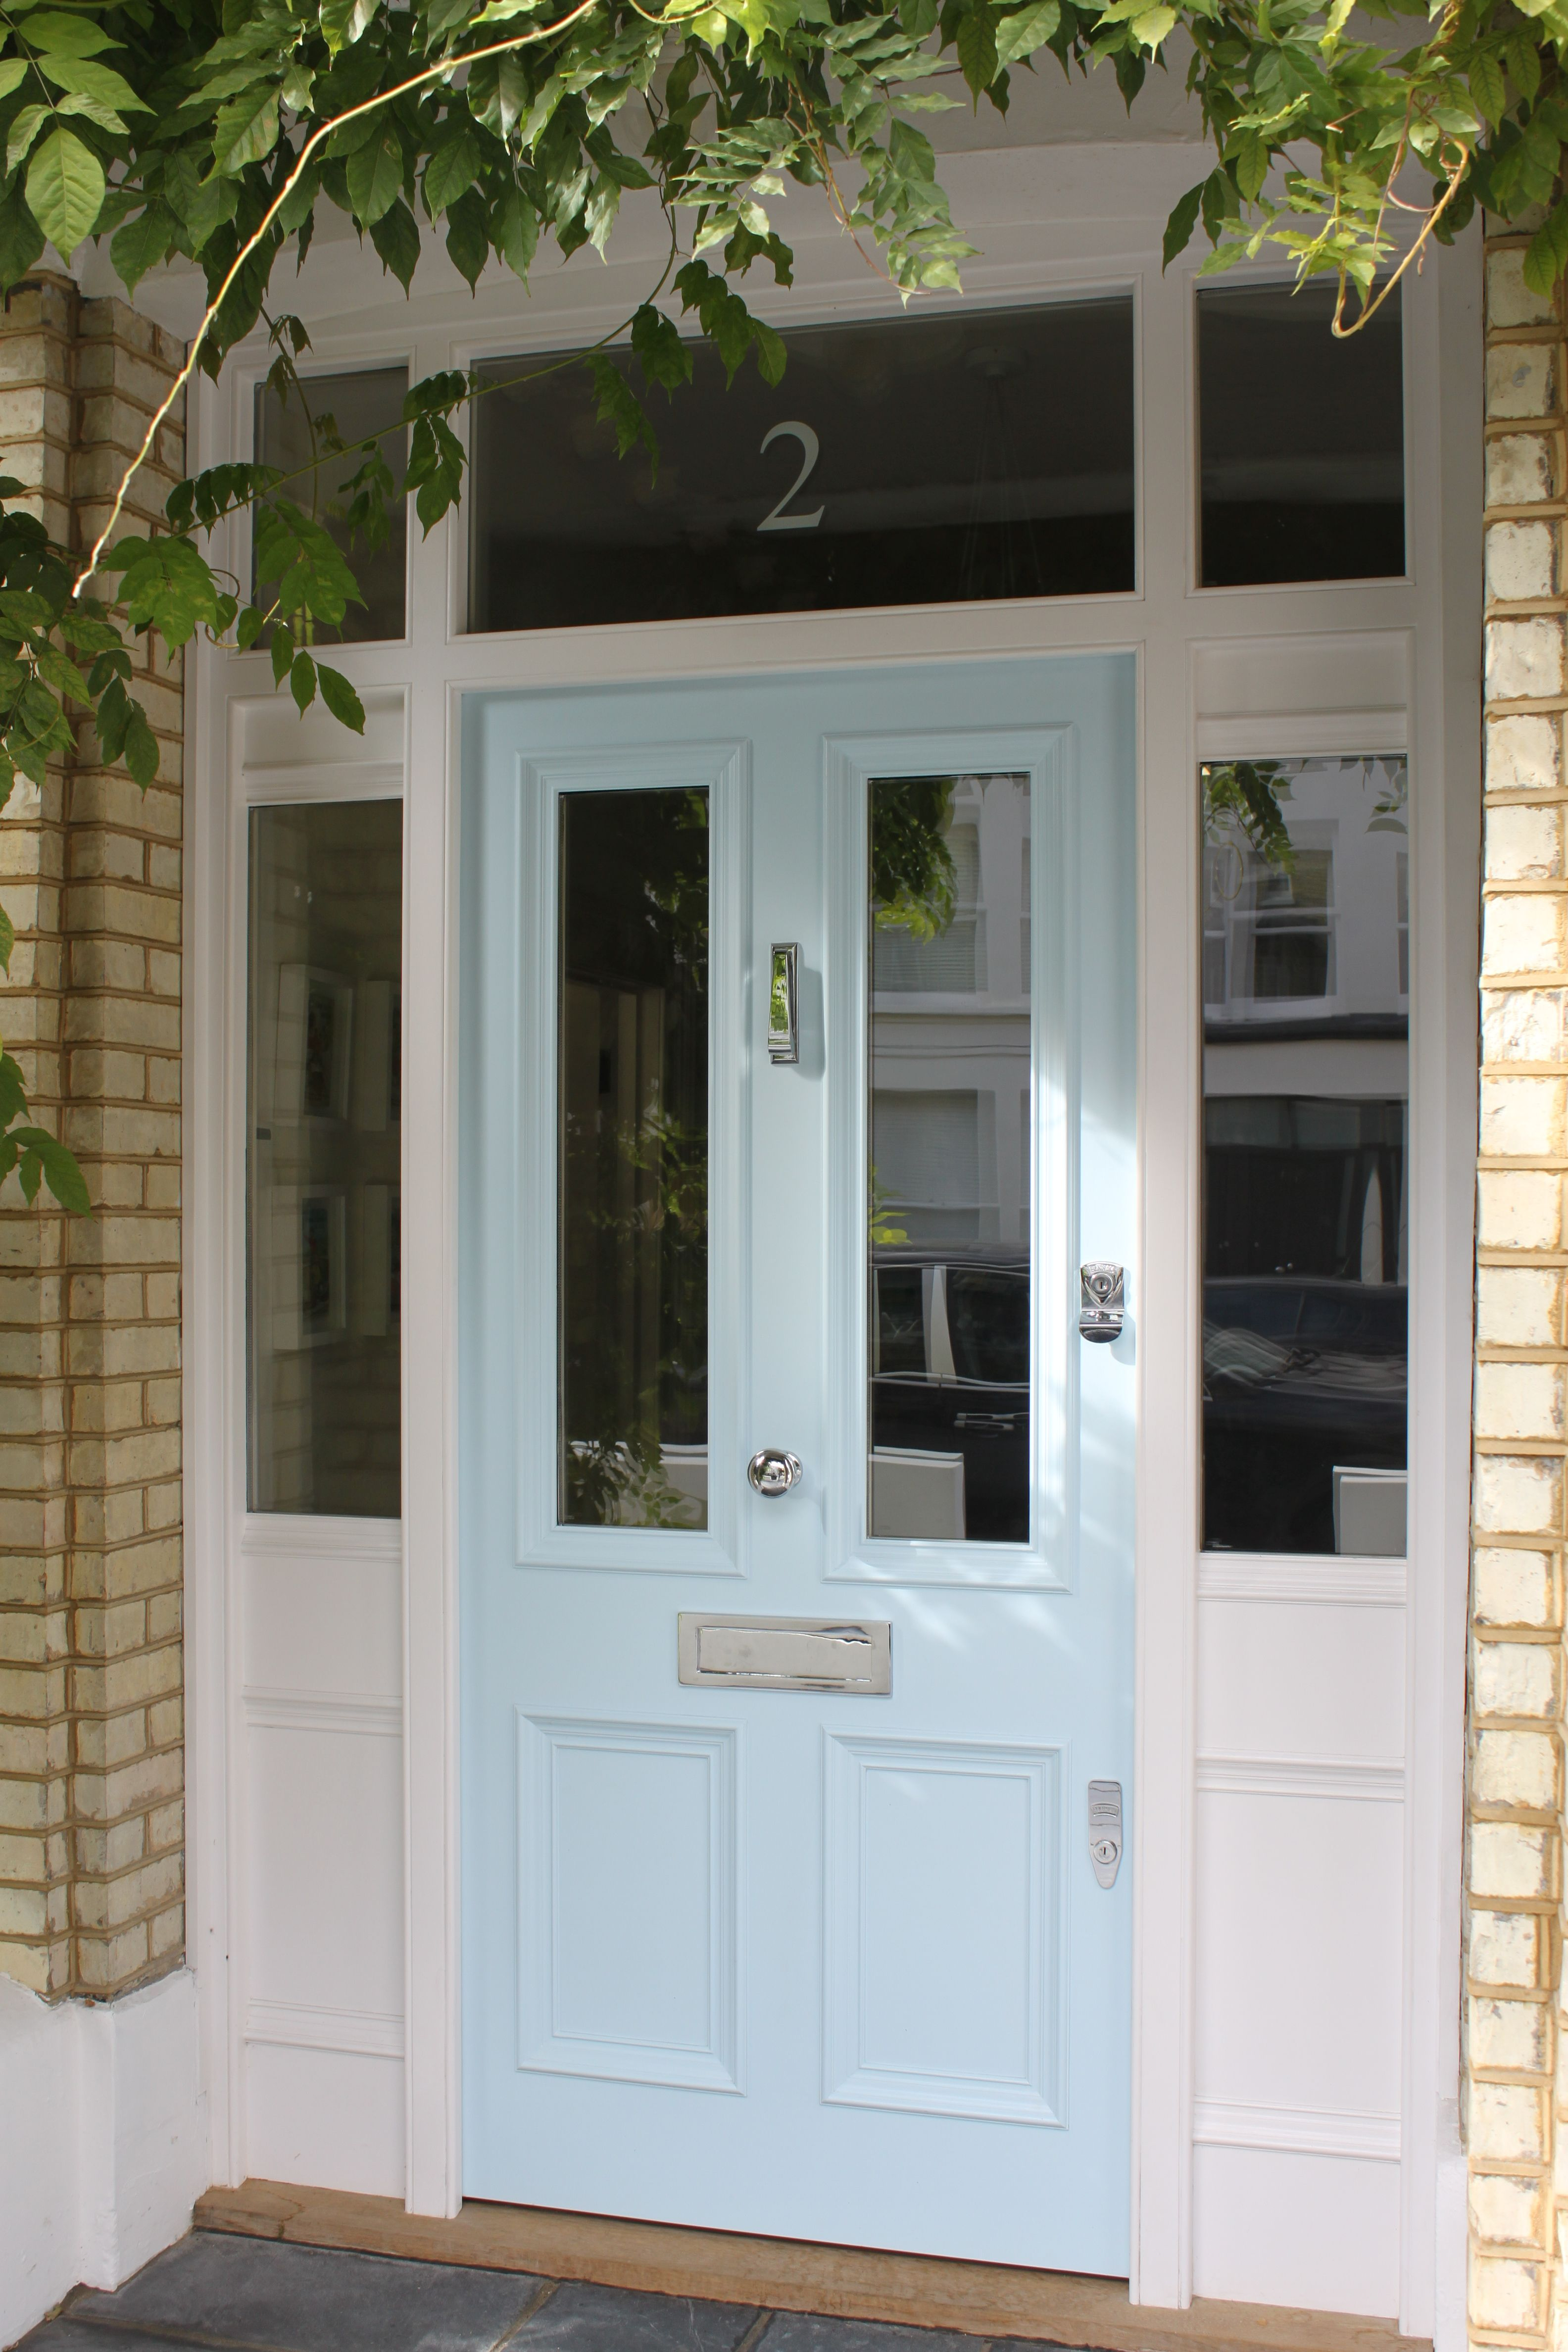 Pin by Vicky Burton on Hallway | Pinterest | Front doors, Doors and ...